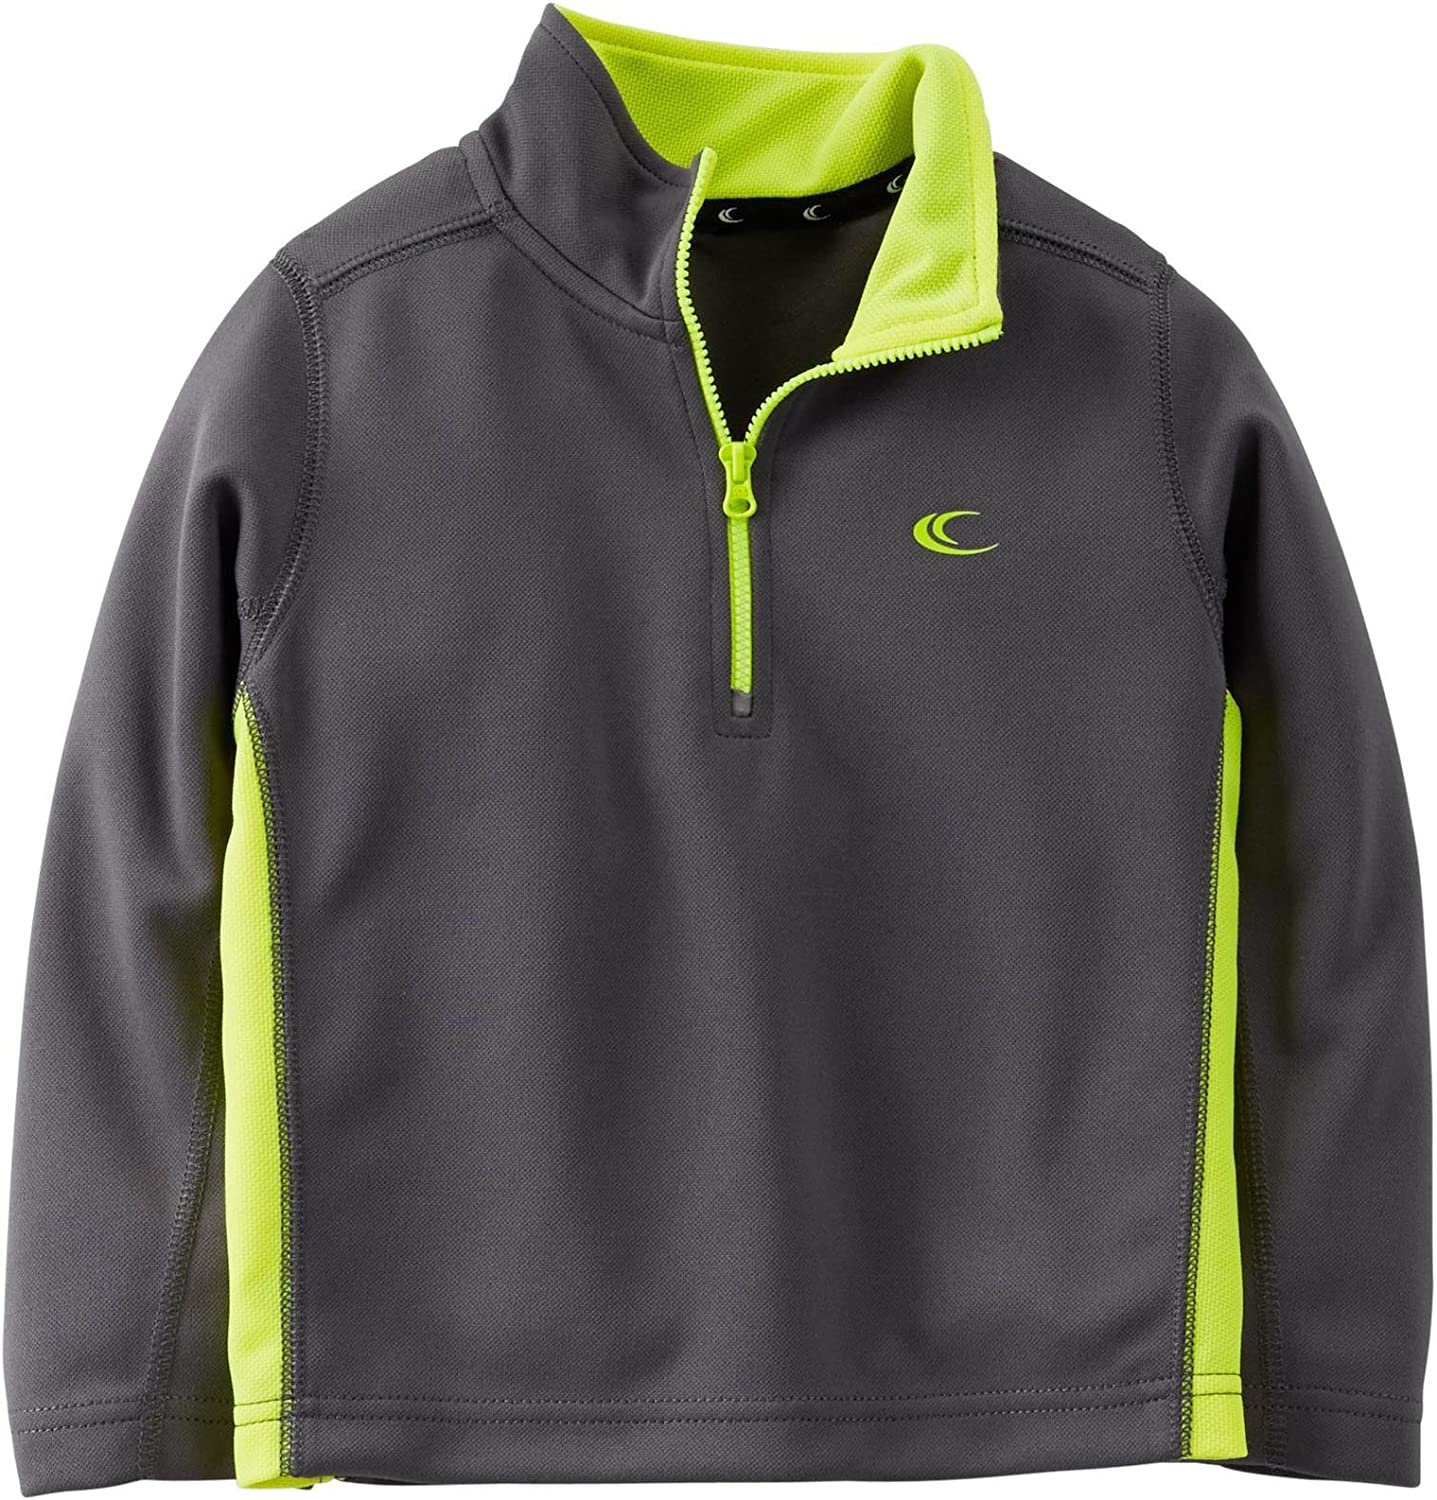 Carter's Baby Boys' Active Pullover Jacket